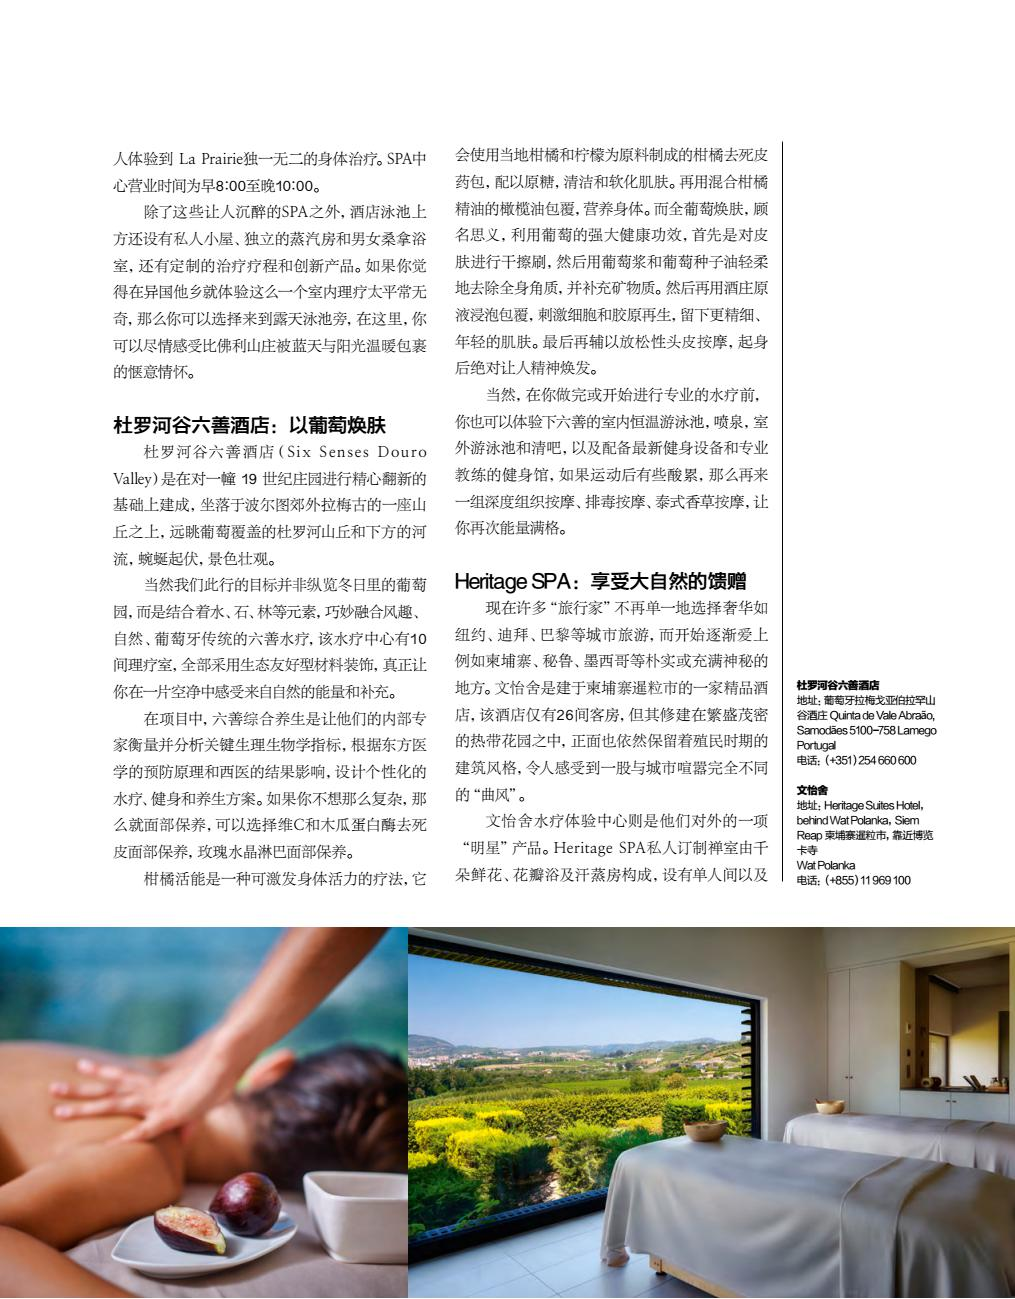 Heritage Suites Hotel luxury travel pr case study media coverage - 小资CHIC, China